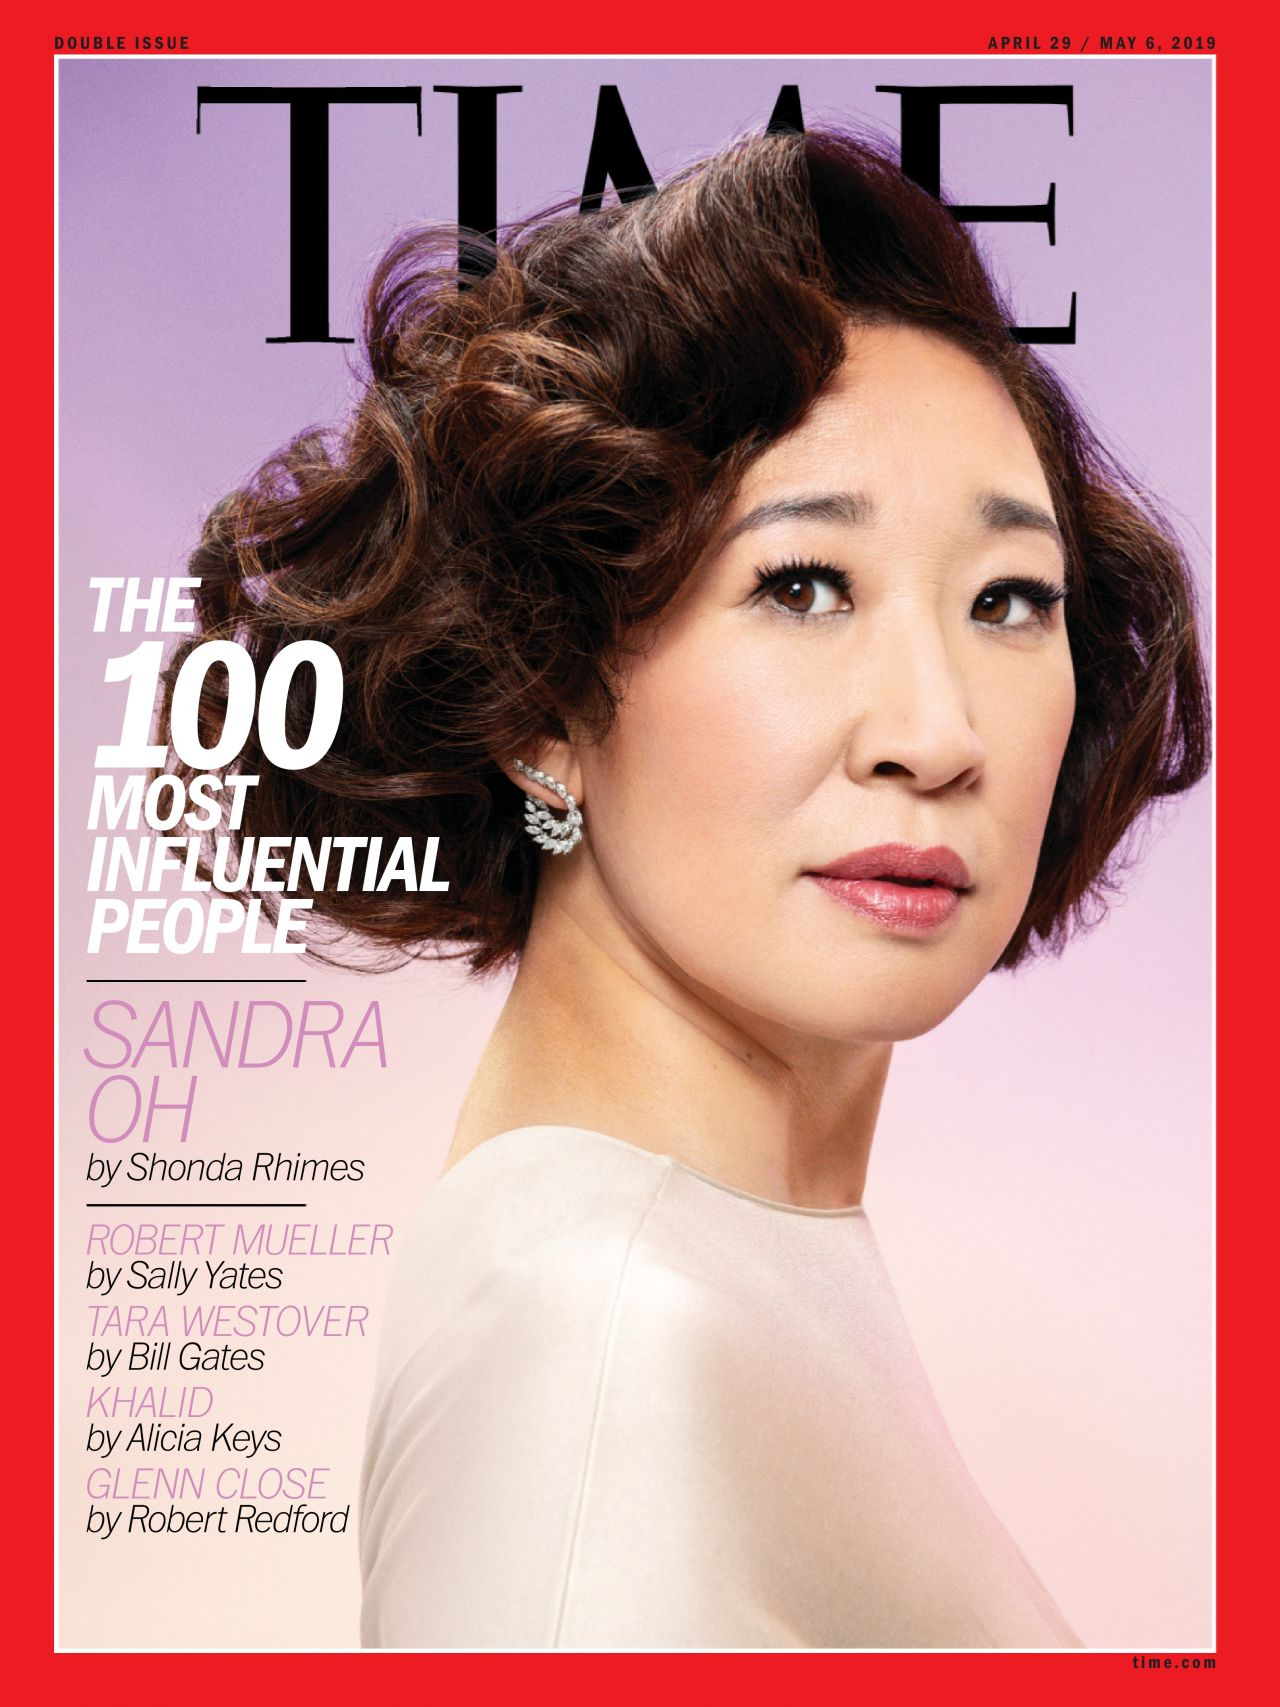 TIME100 Magazine April/May 2019